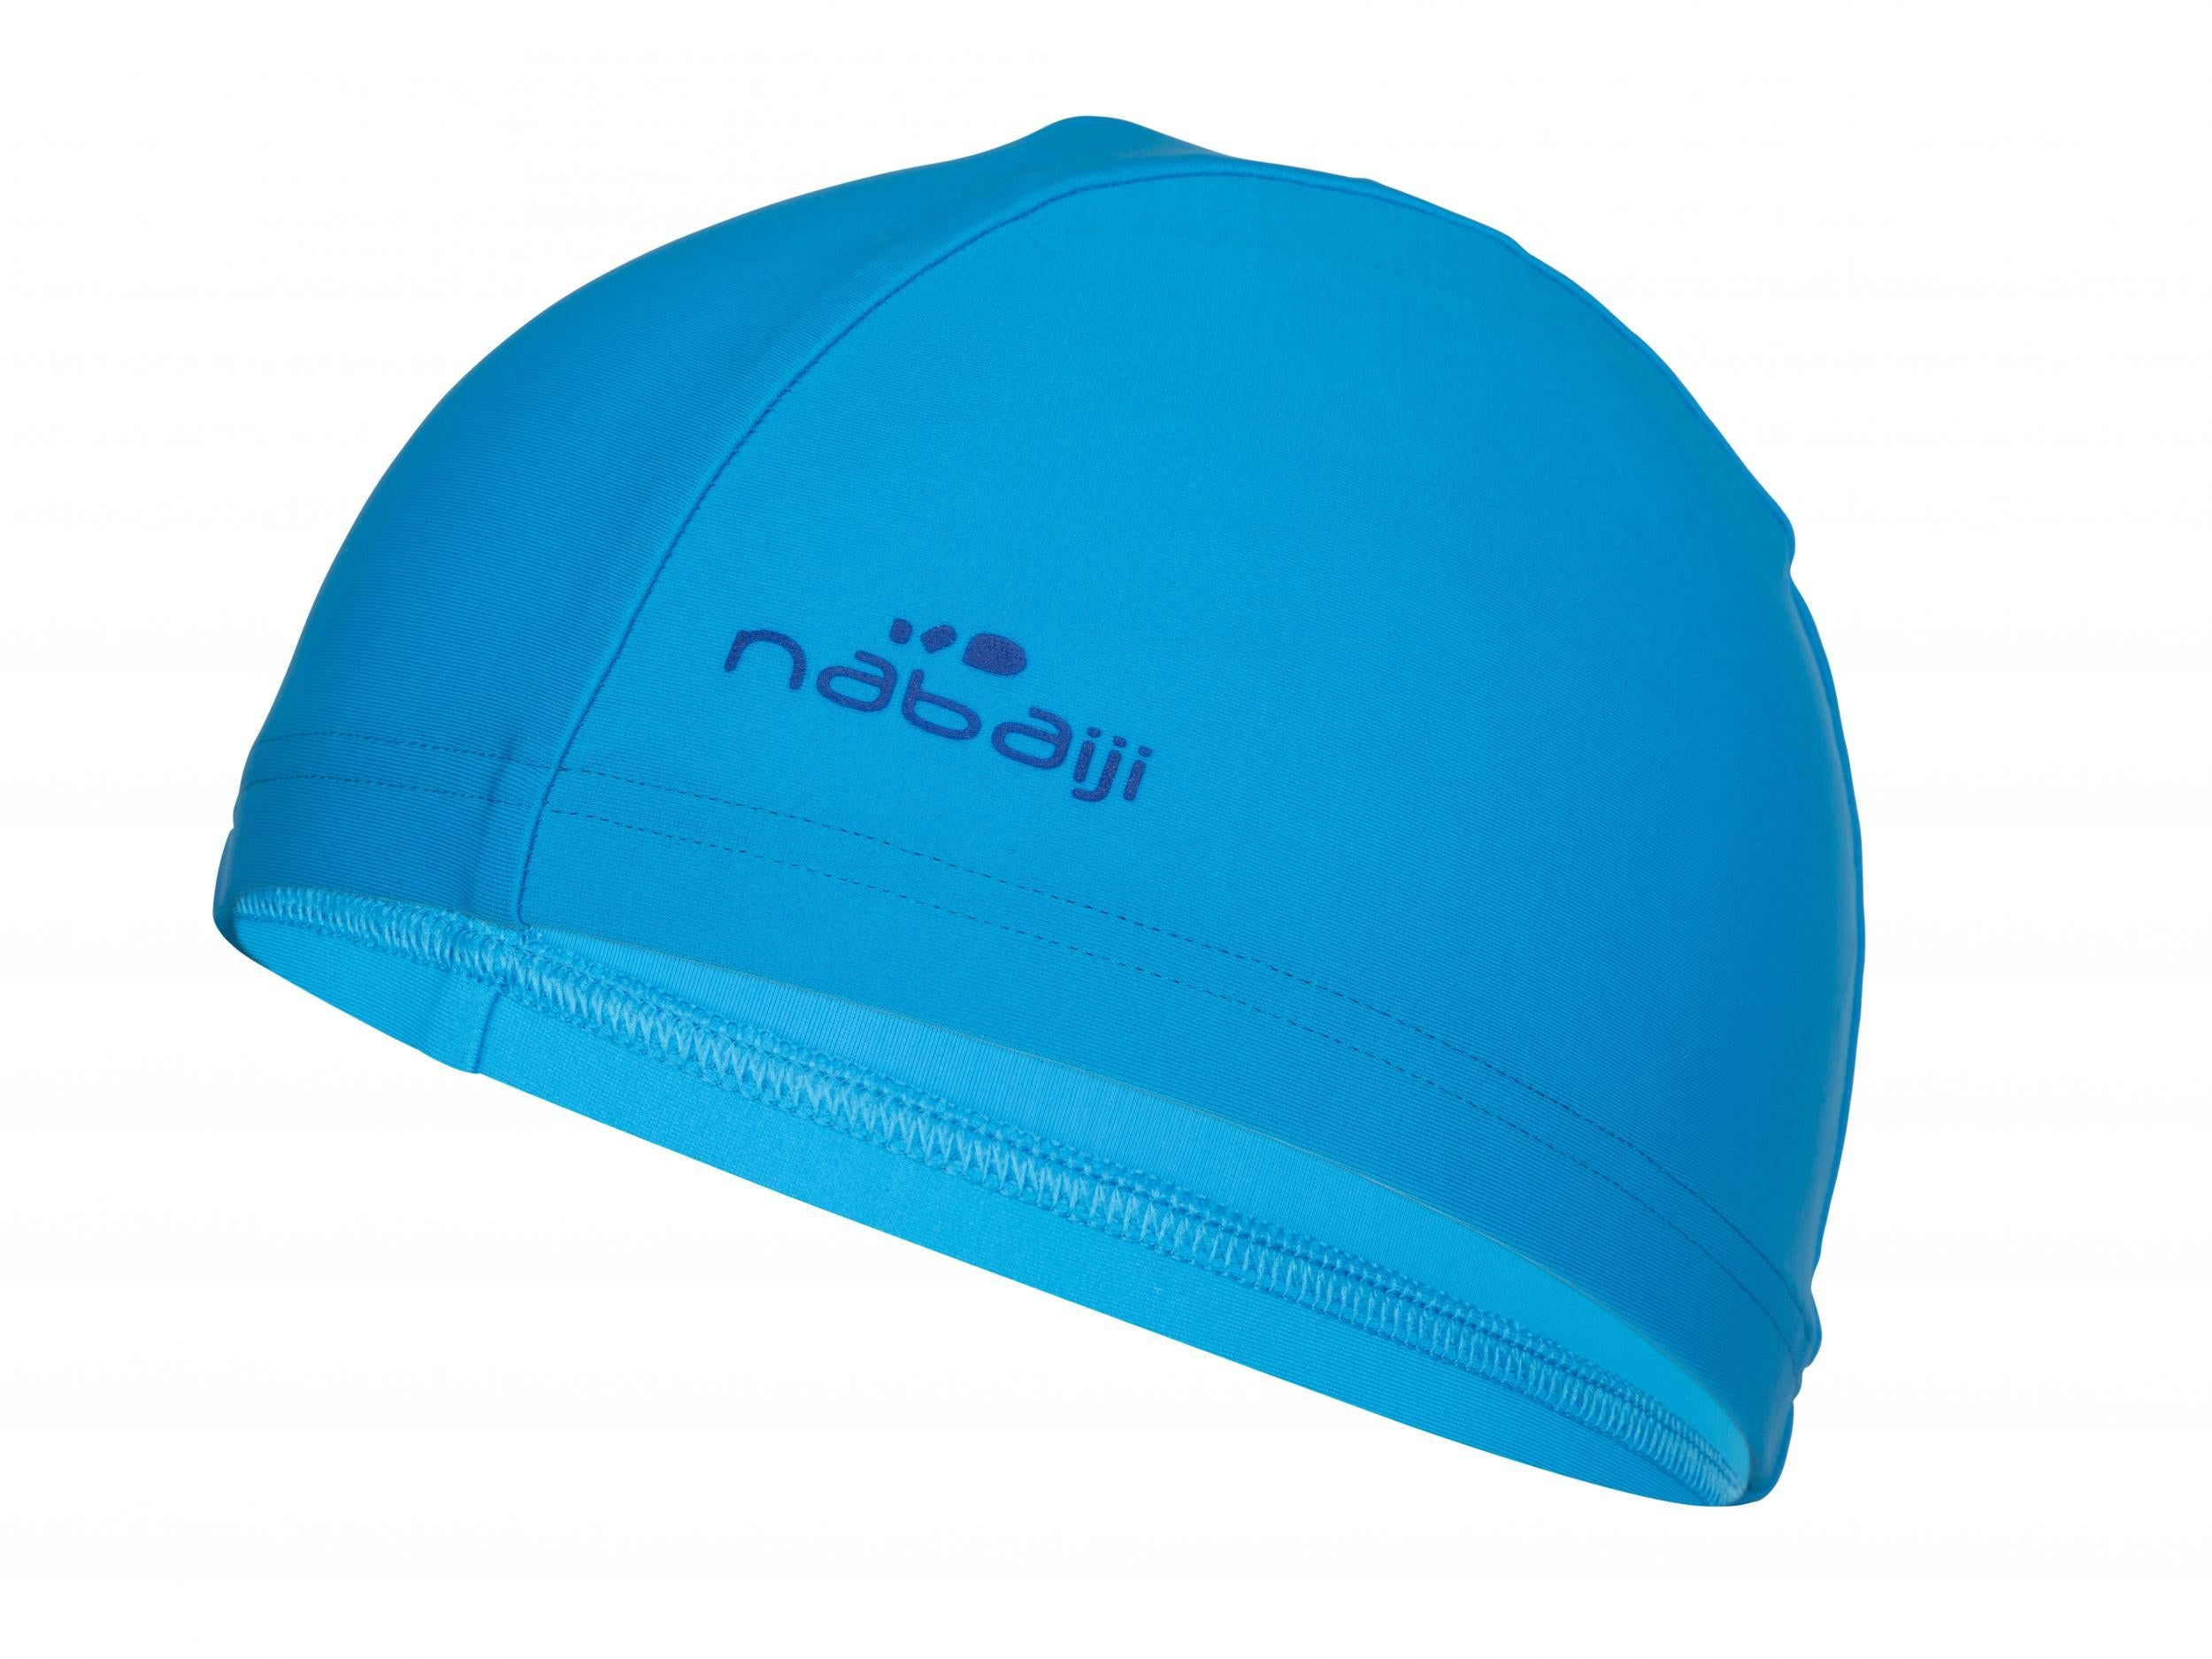 10 best swimming caps  6b8169a56c66